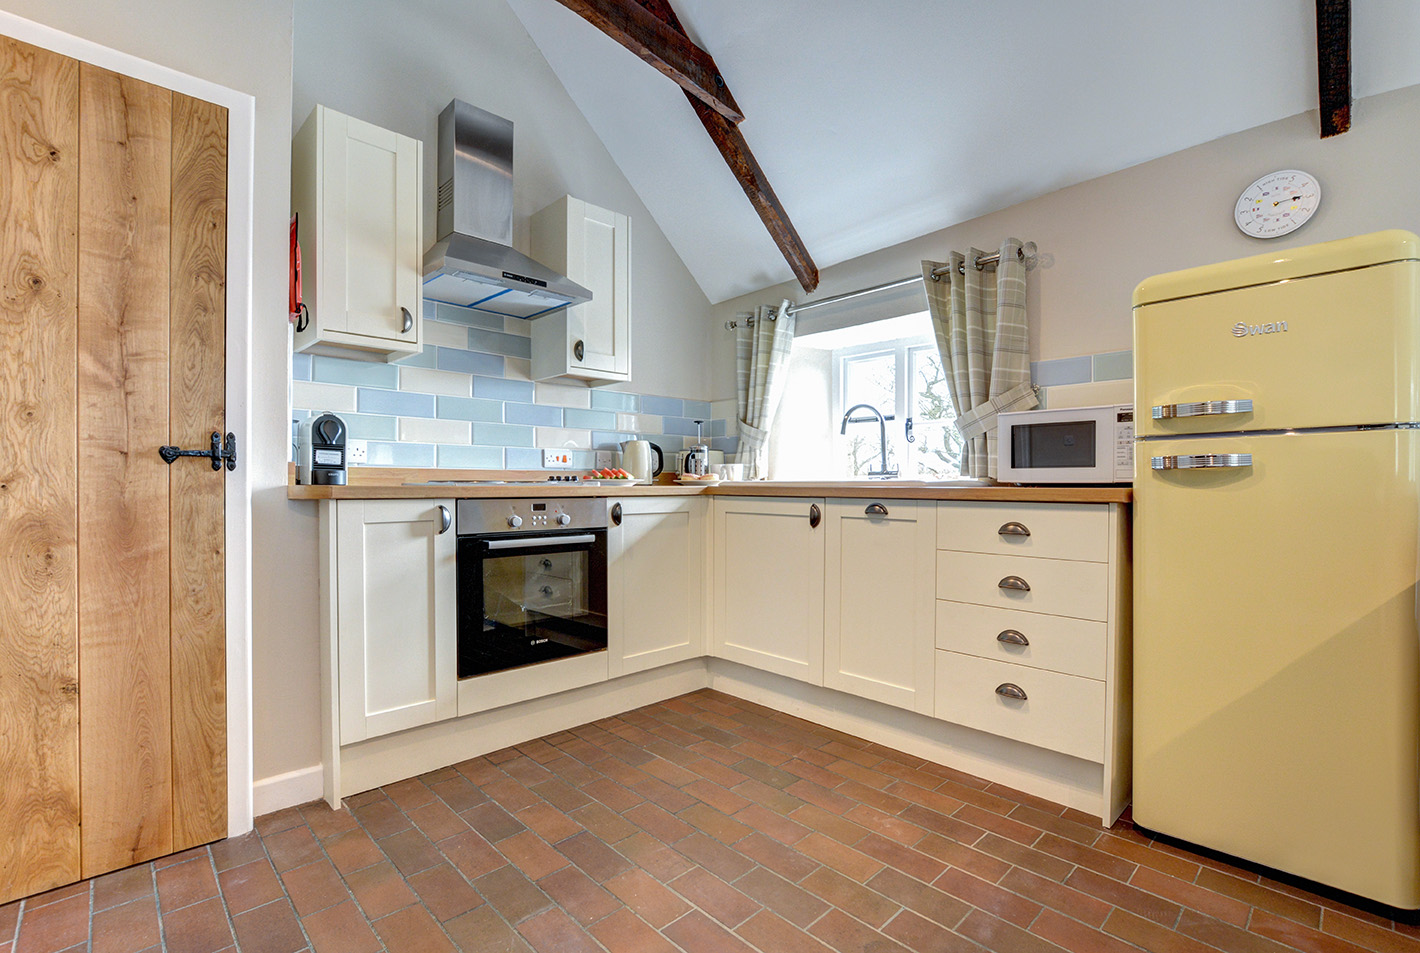 The kitchen of Otterbridge luxury self catering converted barn holiday cottage at Penrose Burden in North Cornwall.jpg